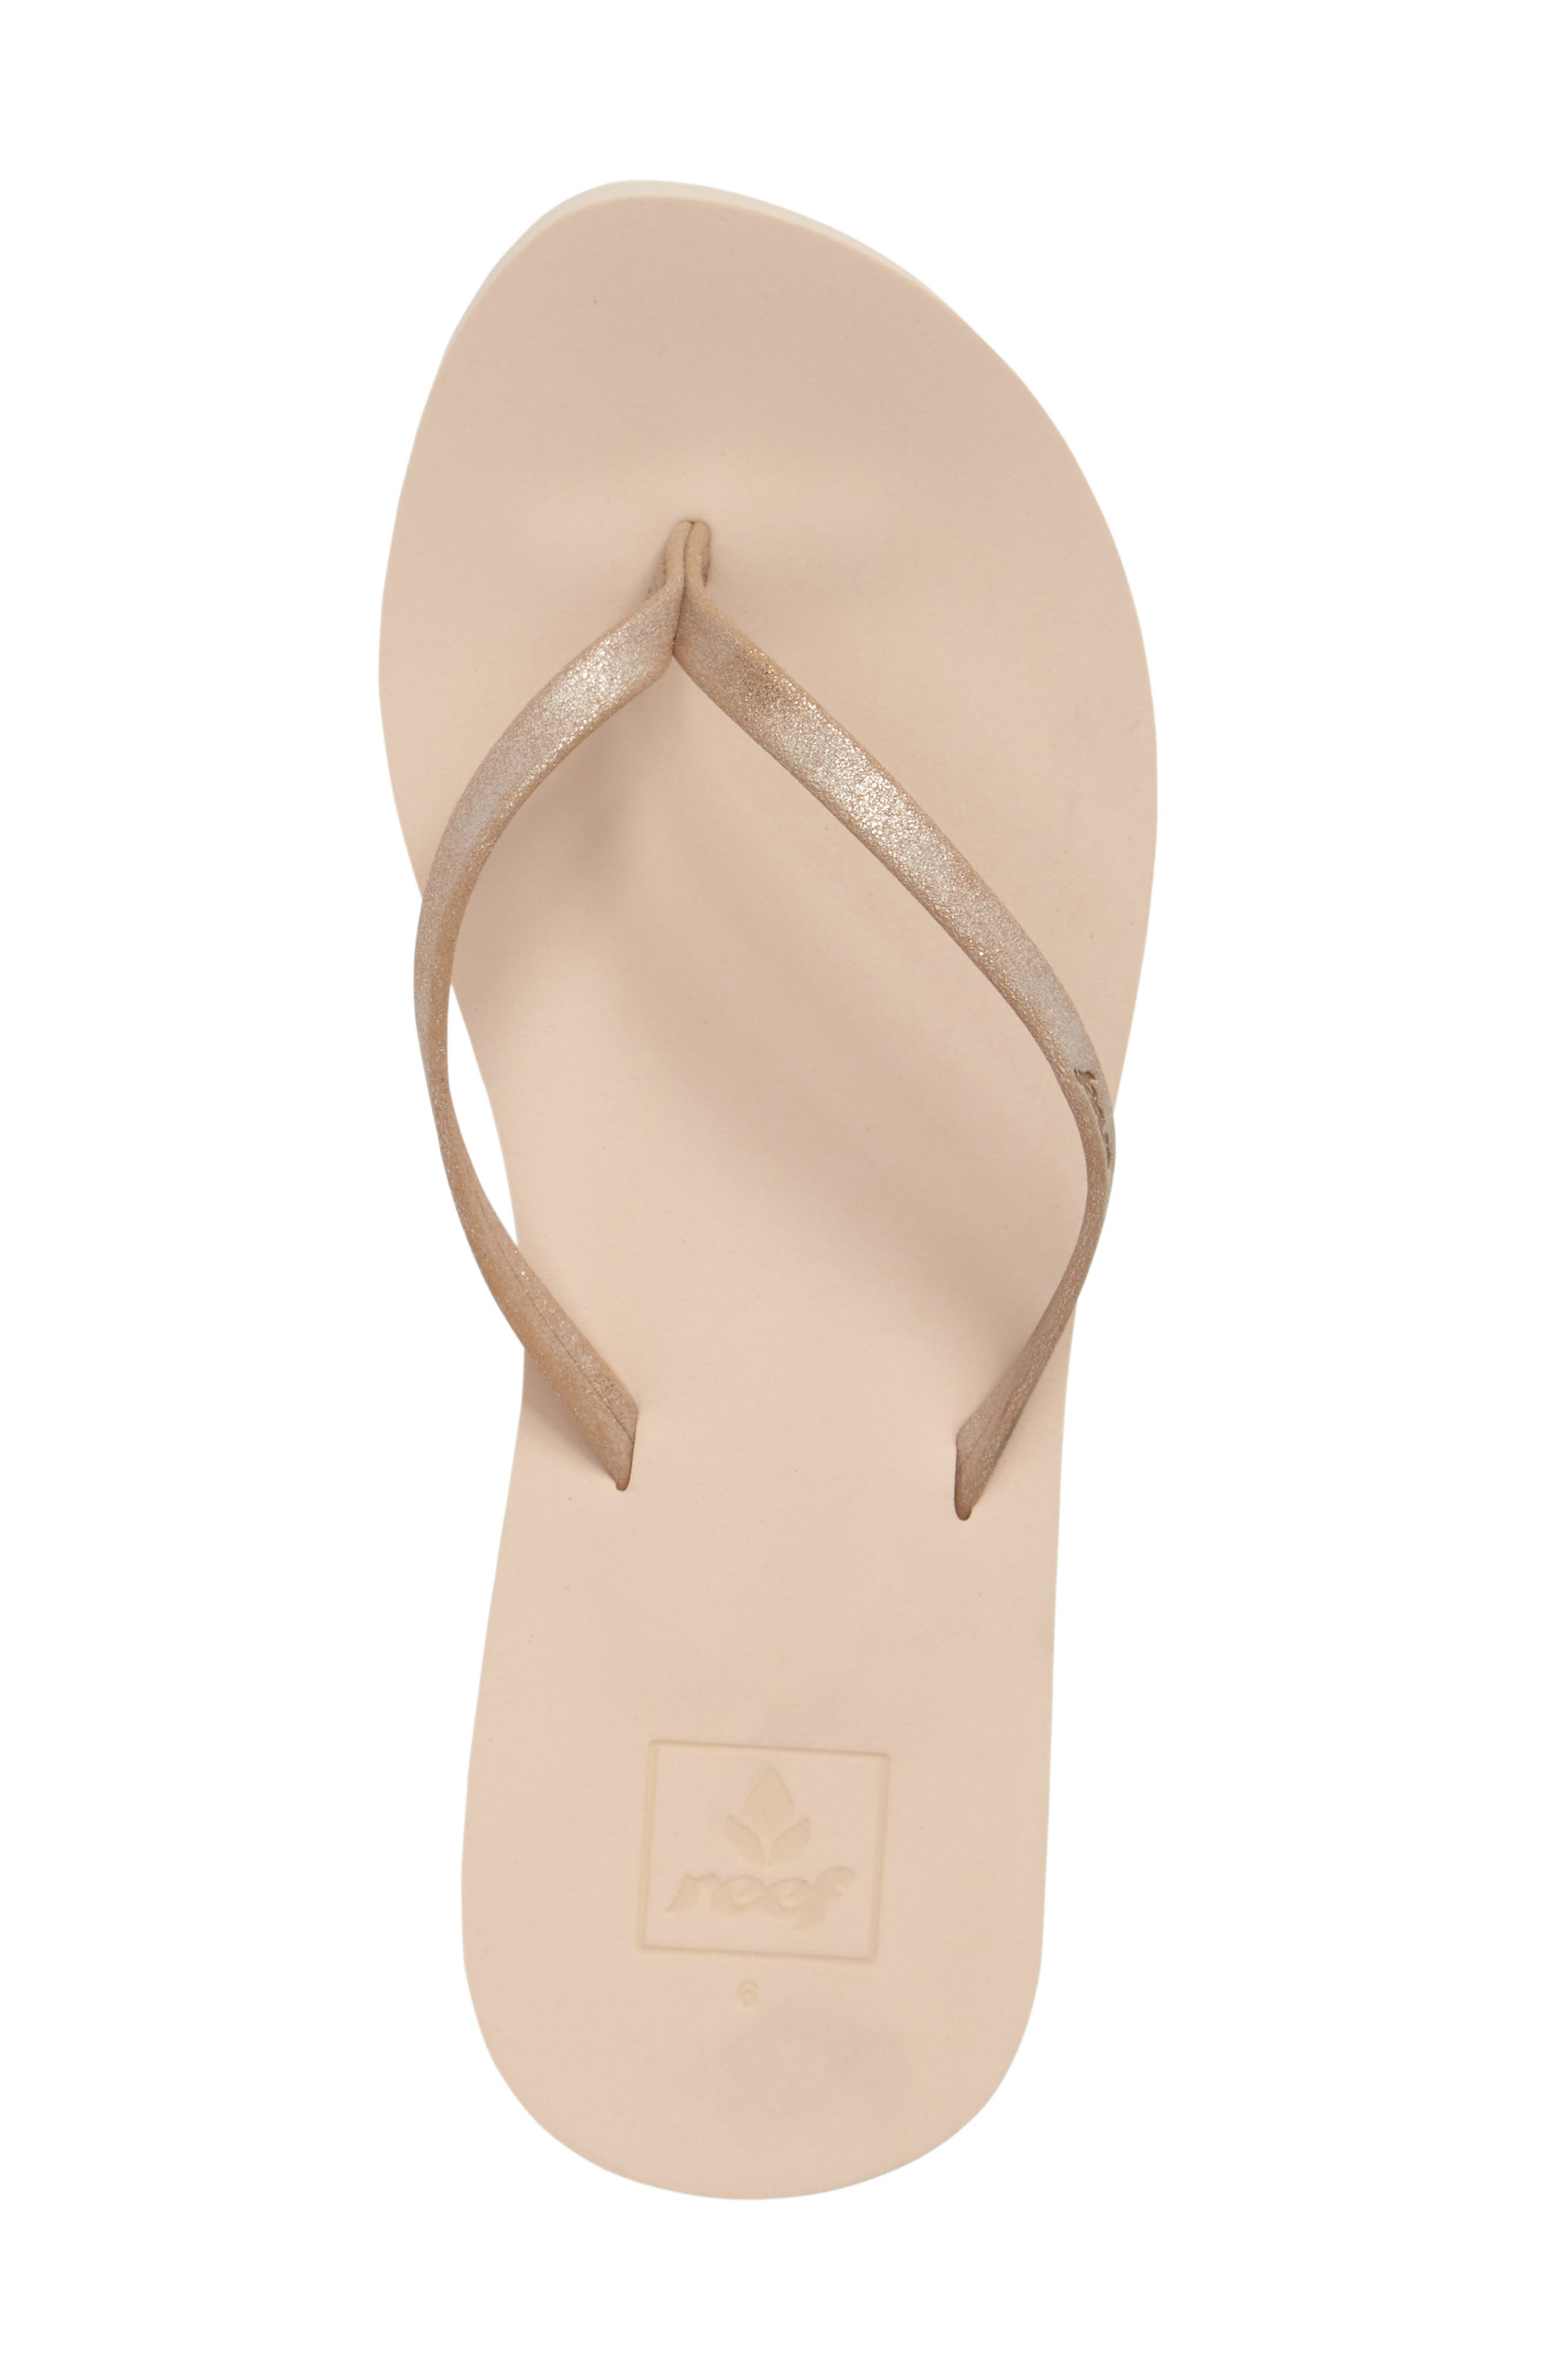 Bliss Nights Flip Flop,                             Alternate thumbnail 12, color,